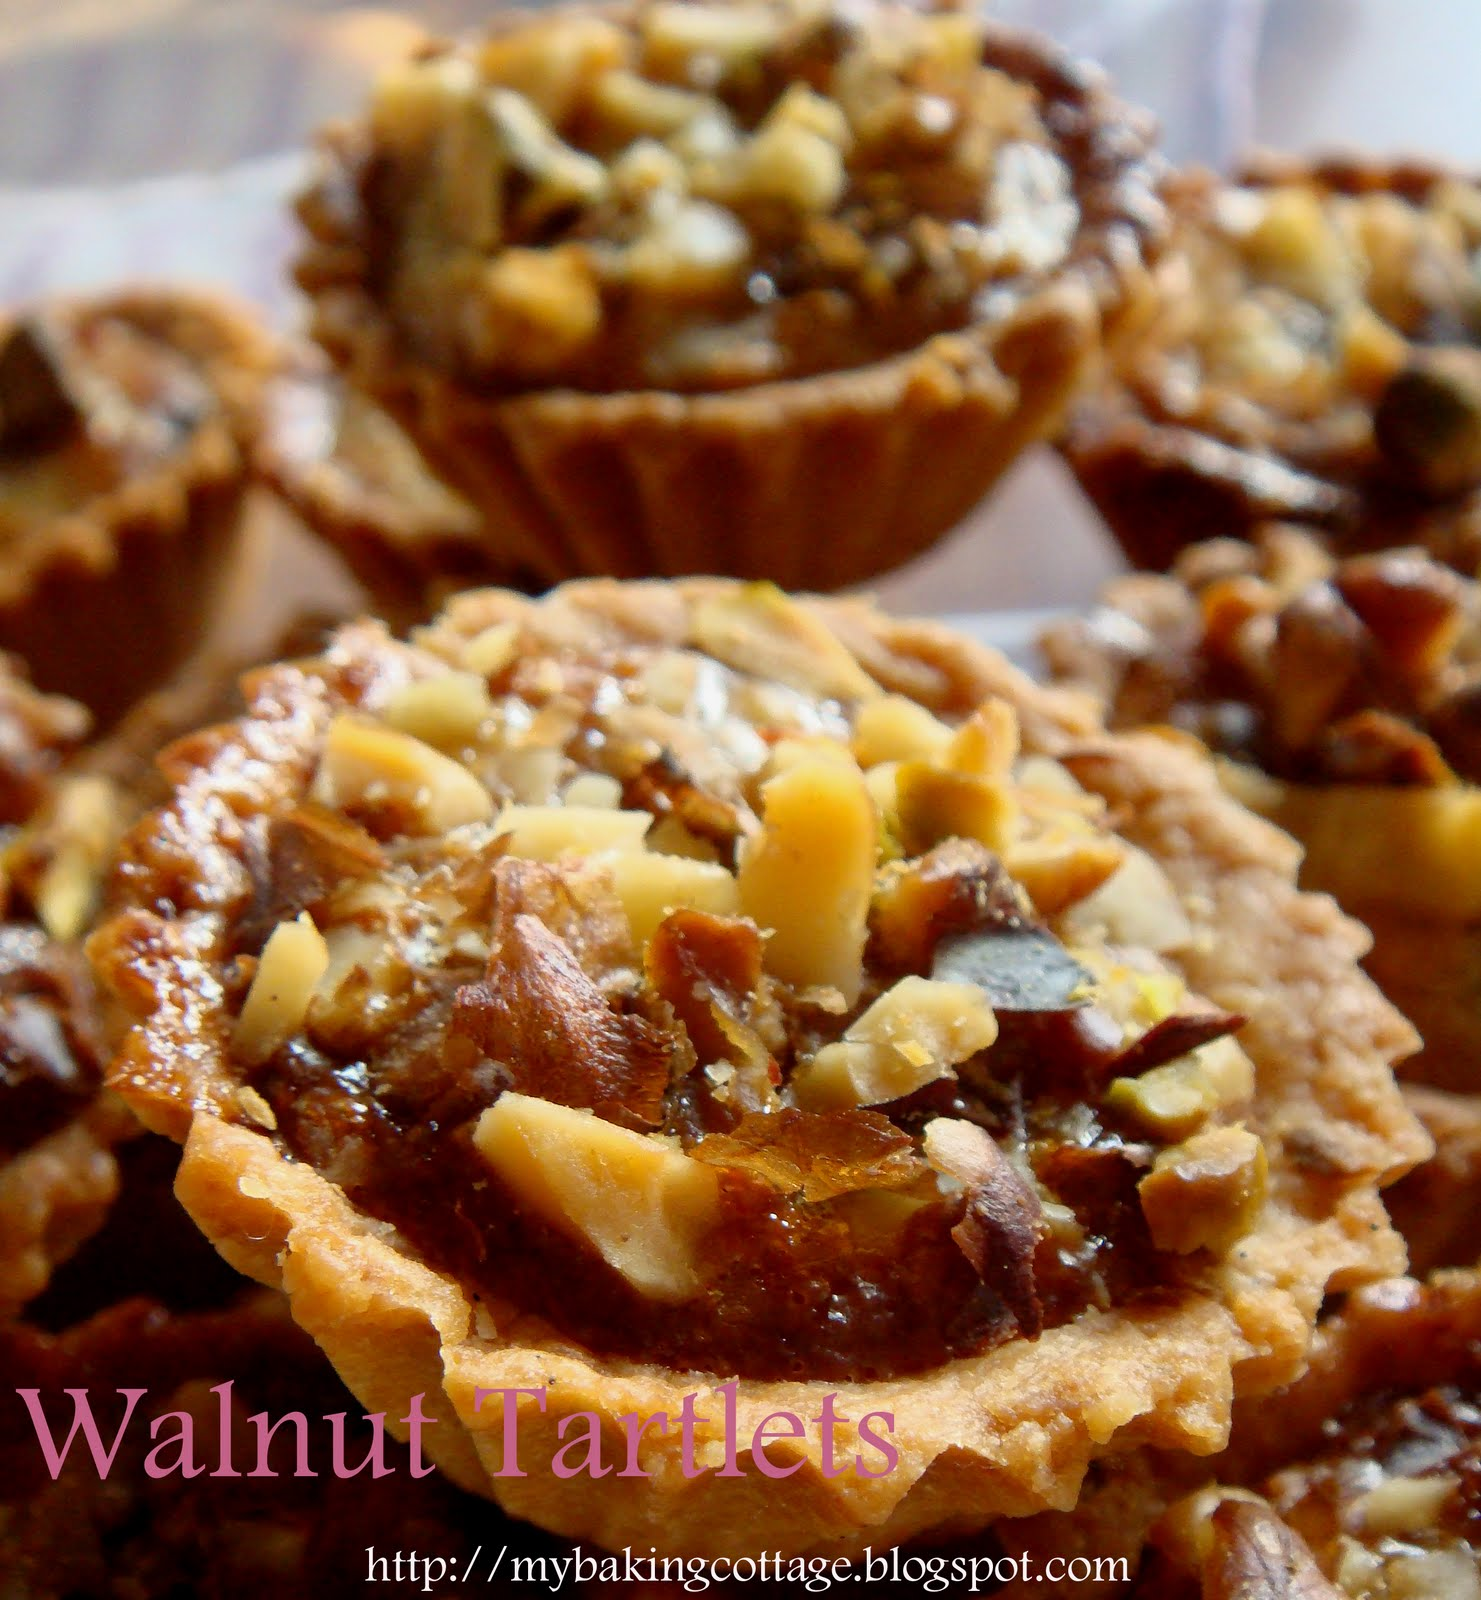 ... post i hardly bake tarts and here you see me posting two tarts in